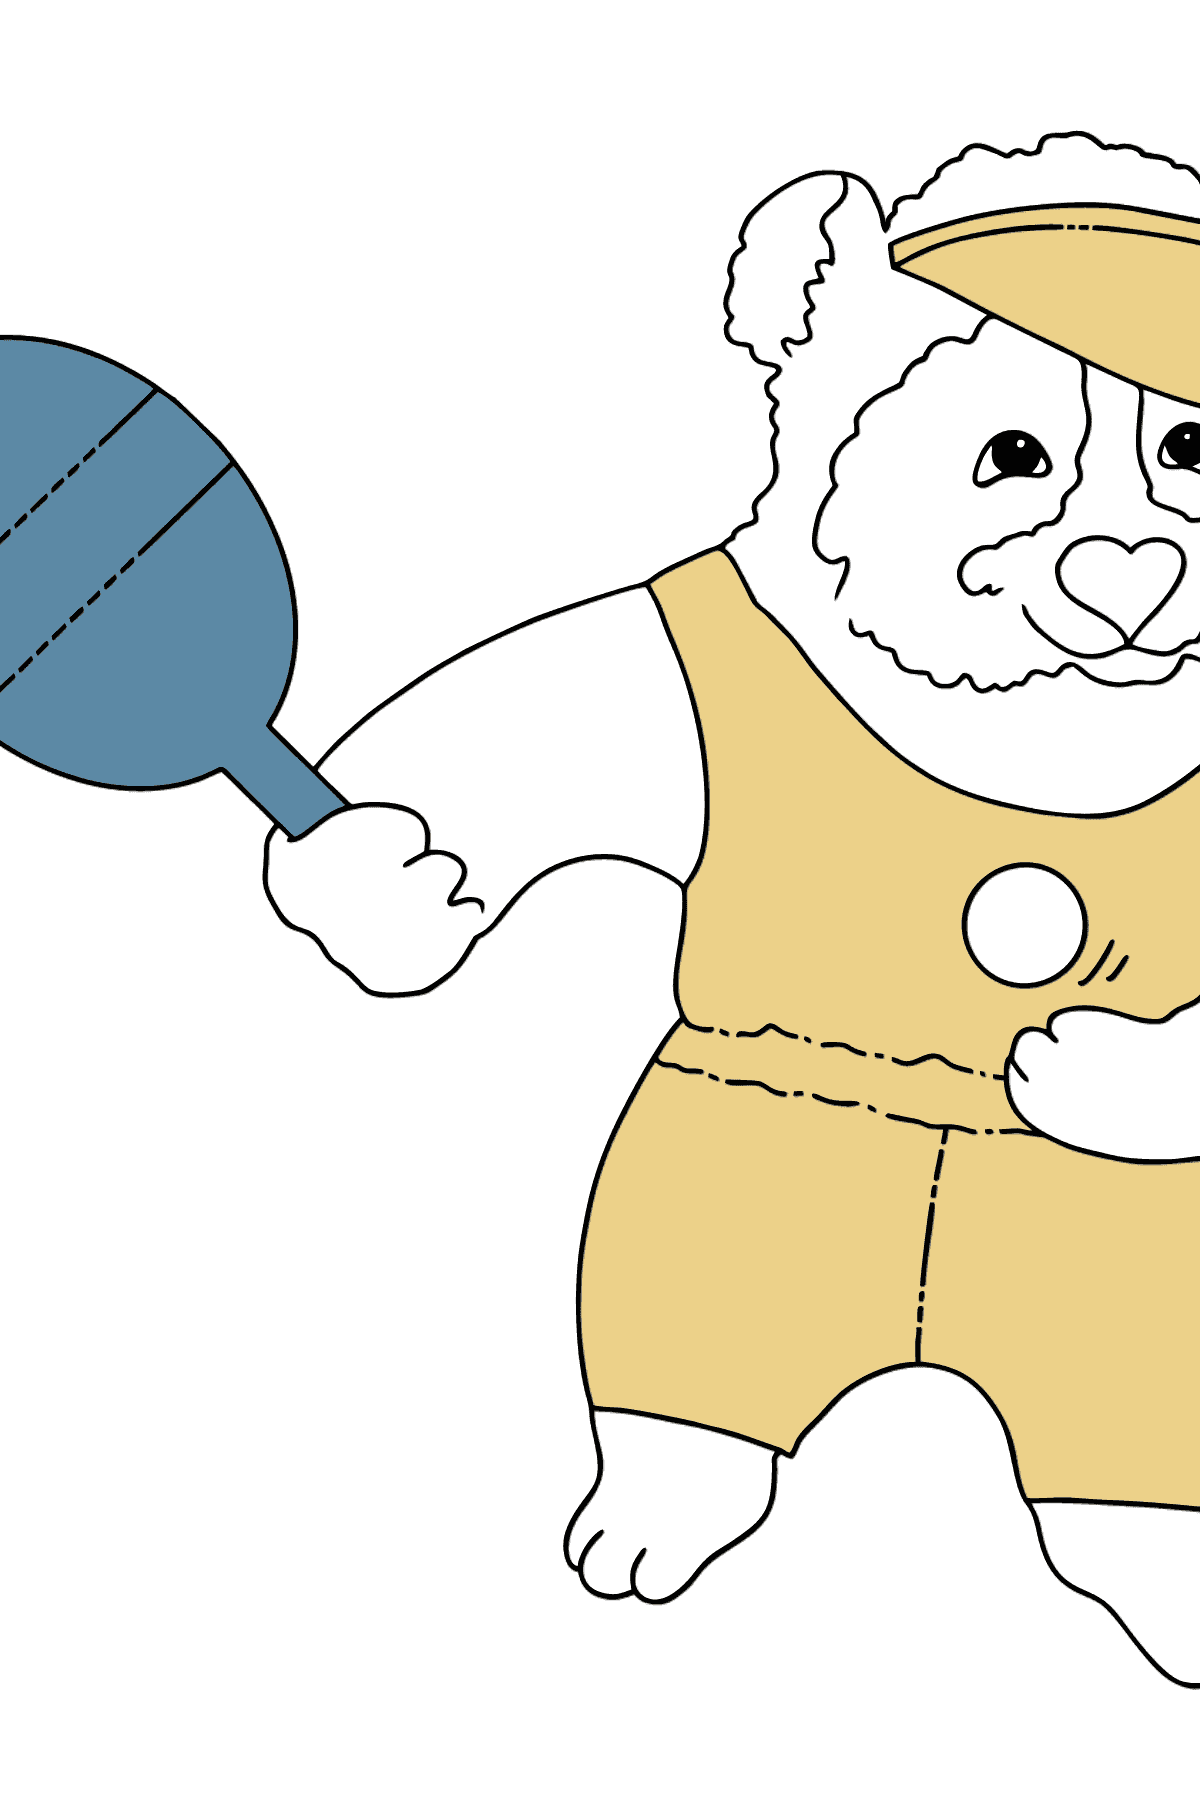 Coloring Picture - A Panda is Playing Tennis - Coloring Pages for Kids